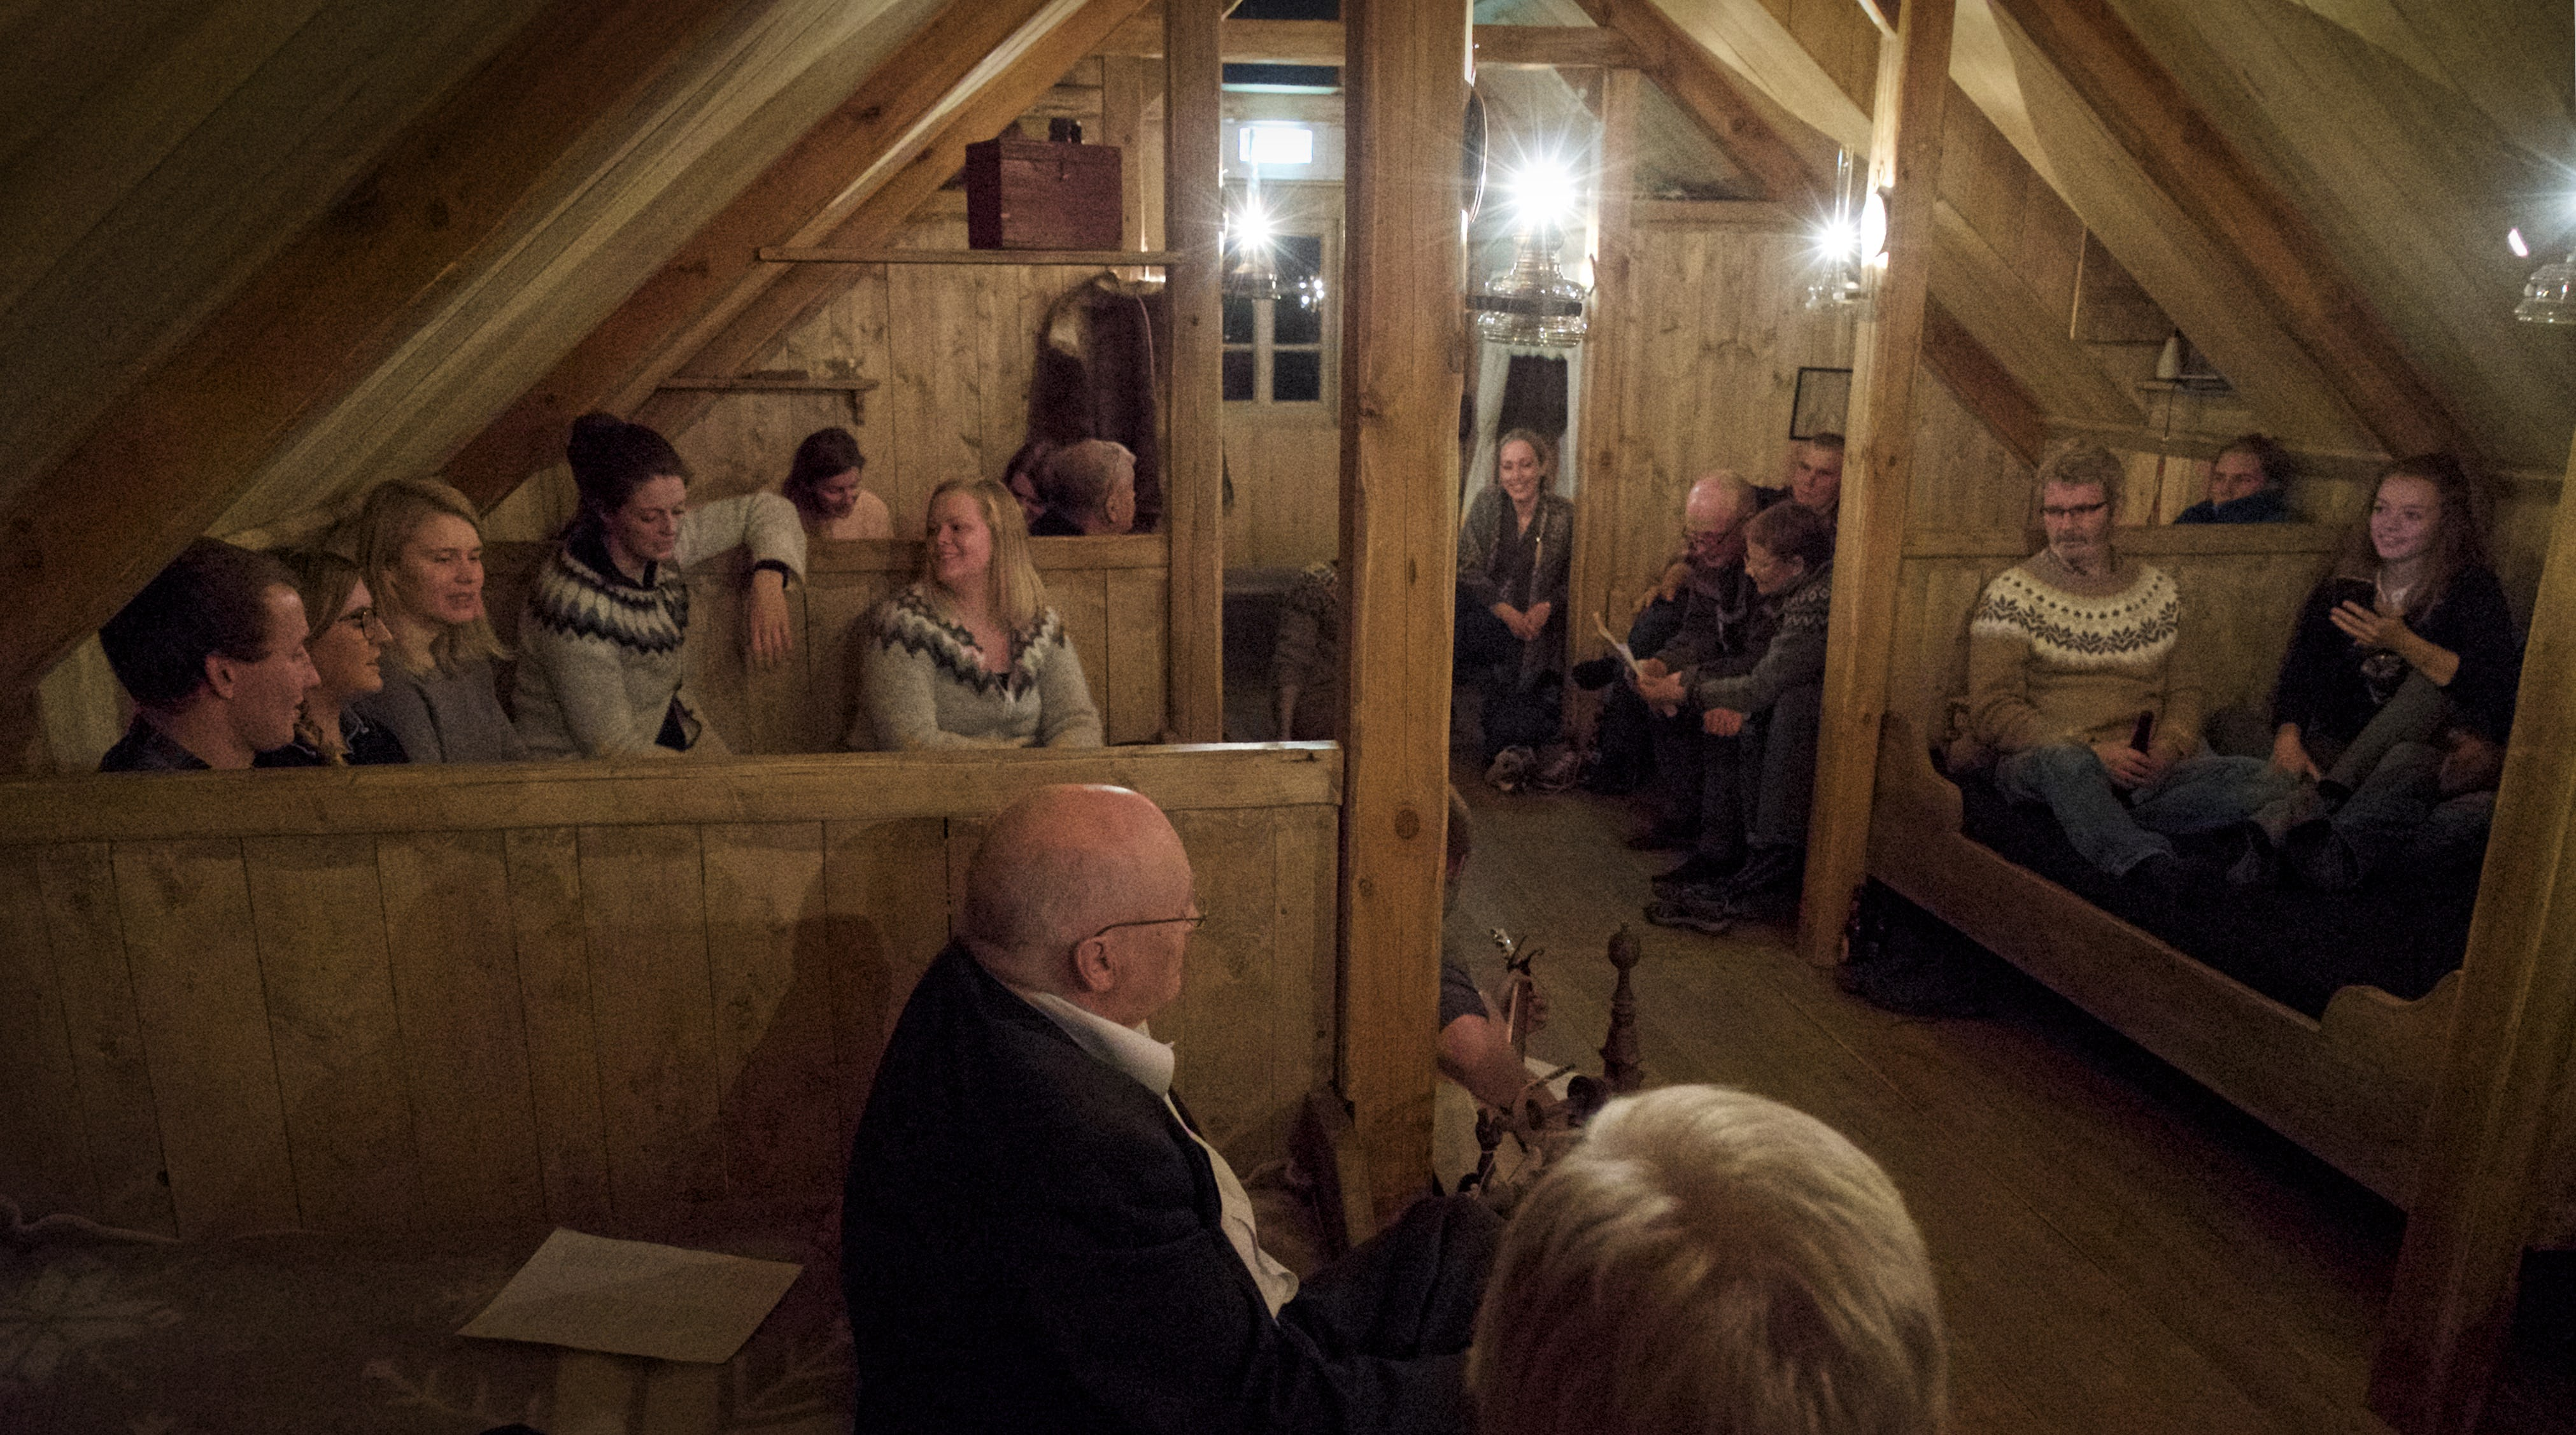 A traditional evening of tales and chatting at an Icelandic traditional Baðstofa room in the Wilderness centre, East Iceland.